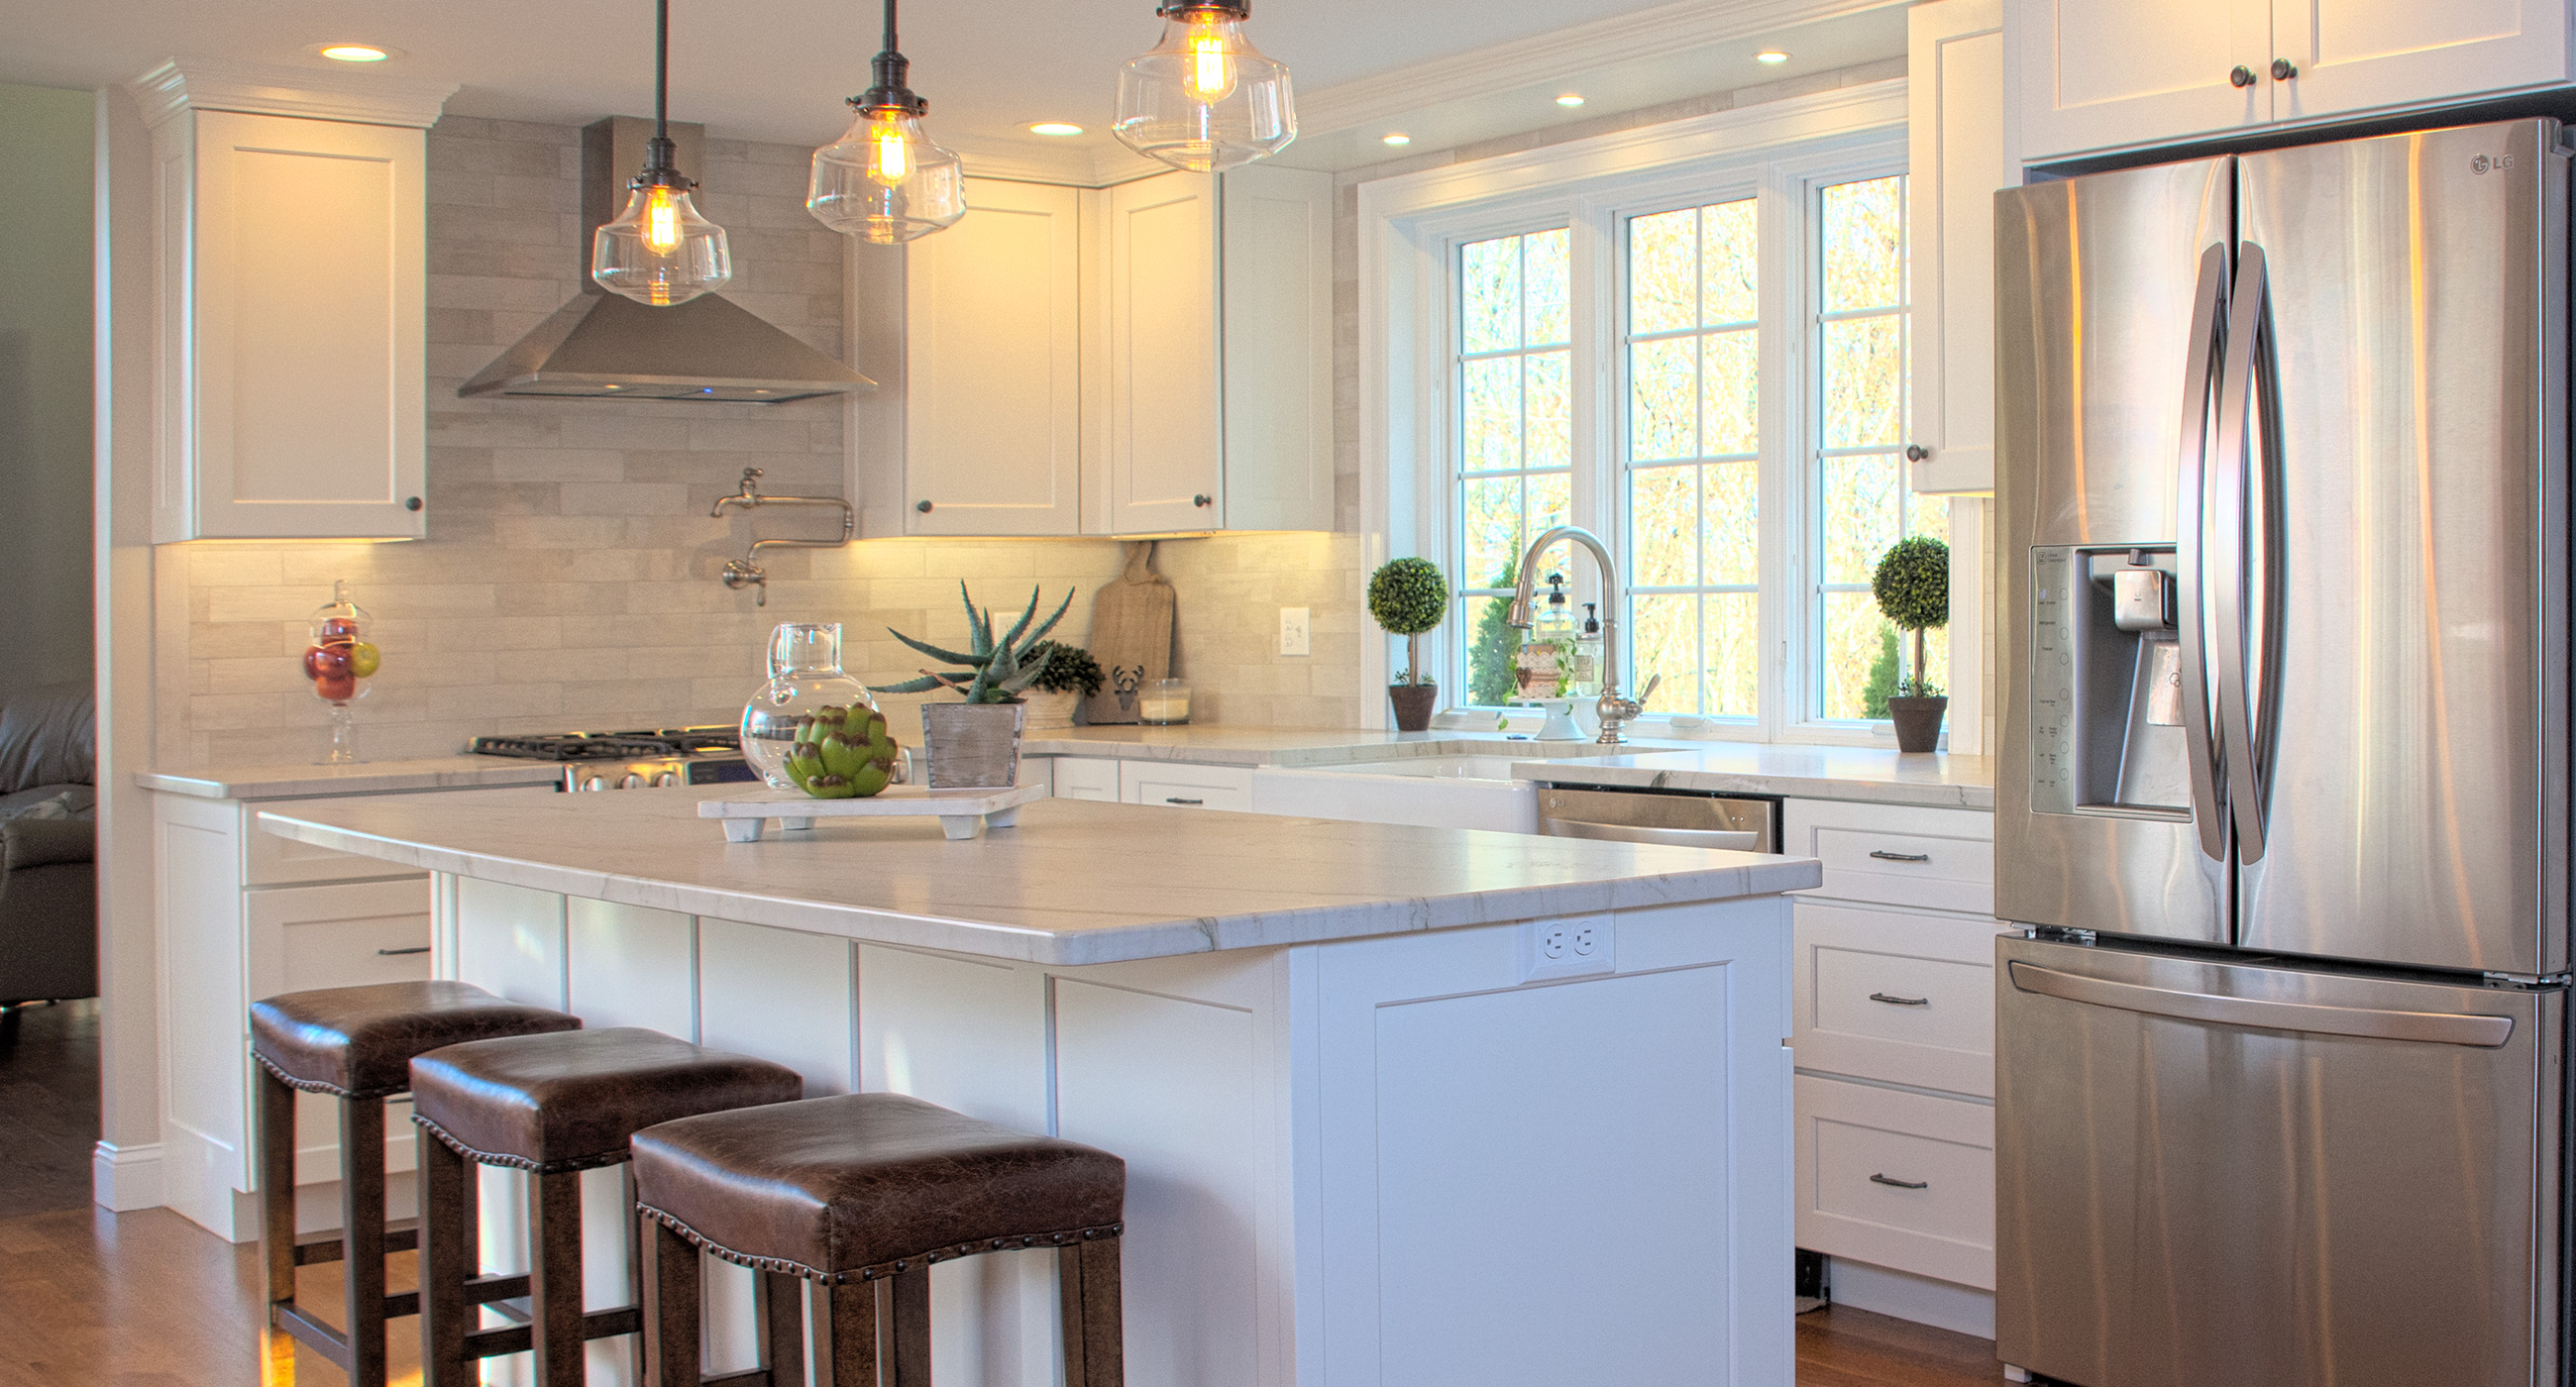 Warm White Kitchen Hardwood Tile Backsplash